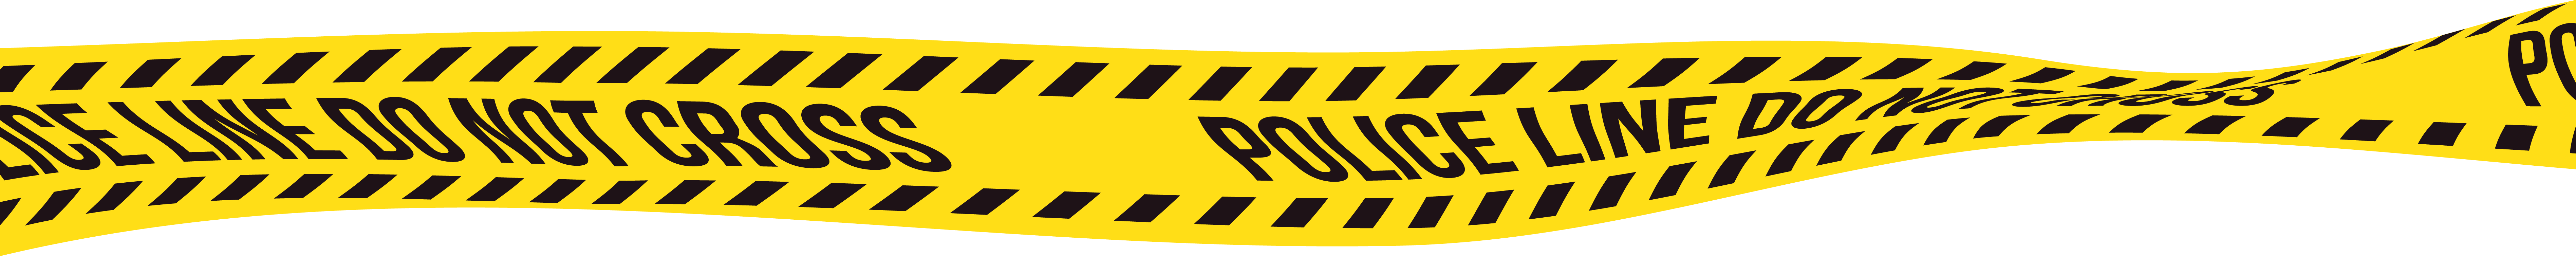 Yellow tape clipart graphic transparent stock Police yellow tape clipart images gallery for free download ... graphic transparent stock